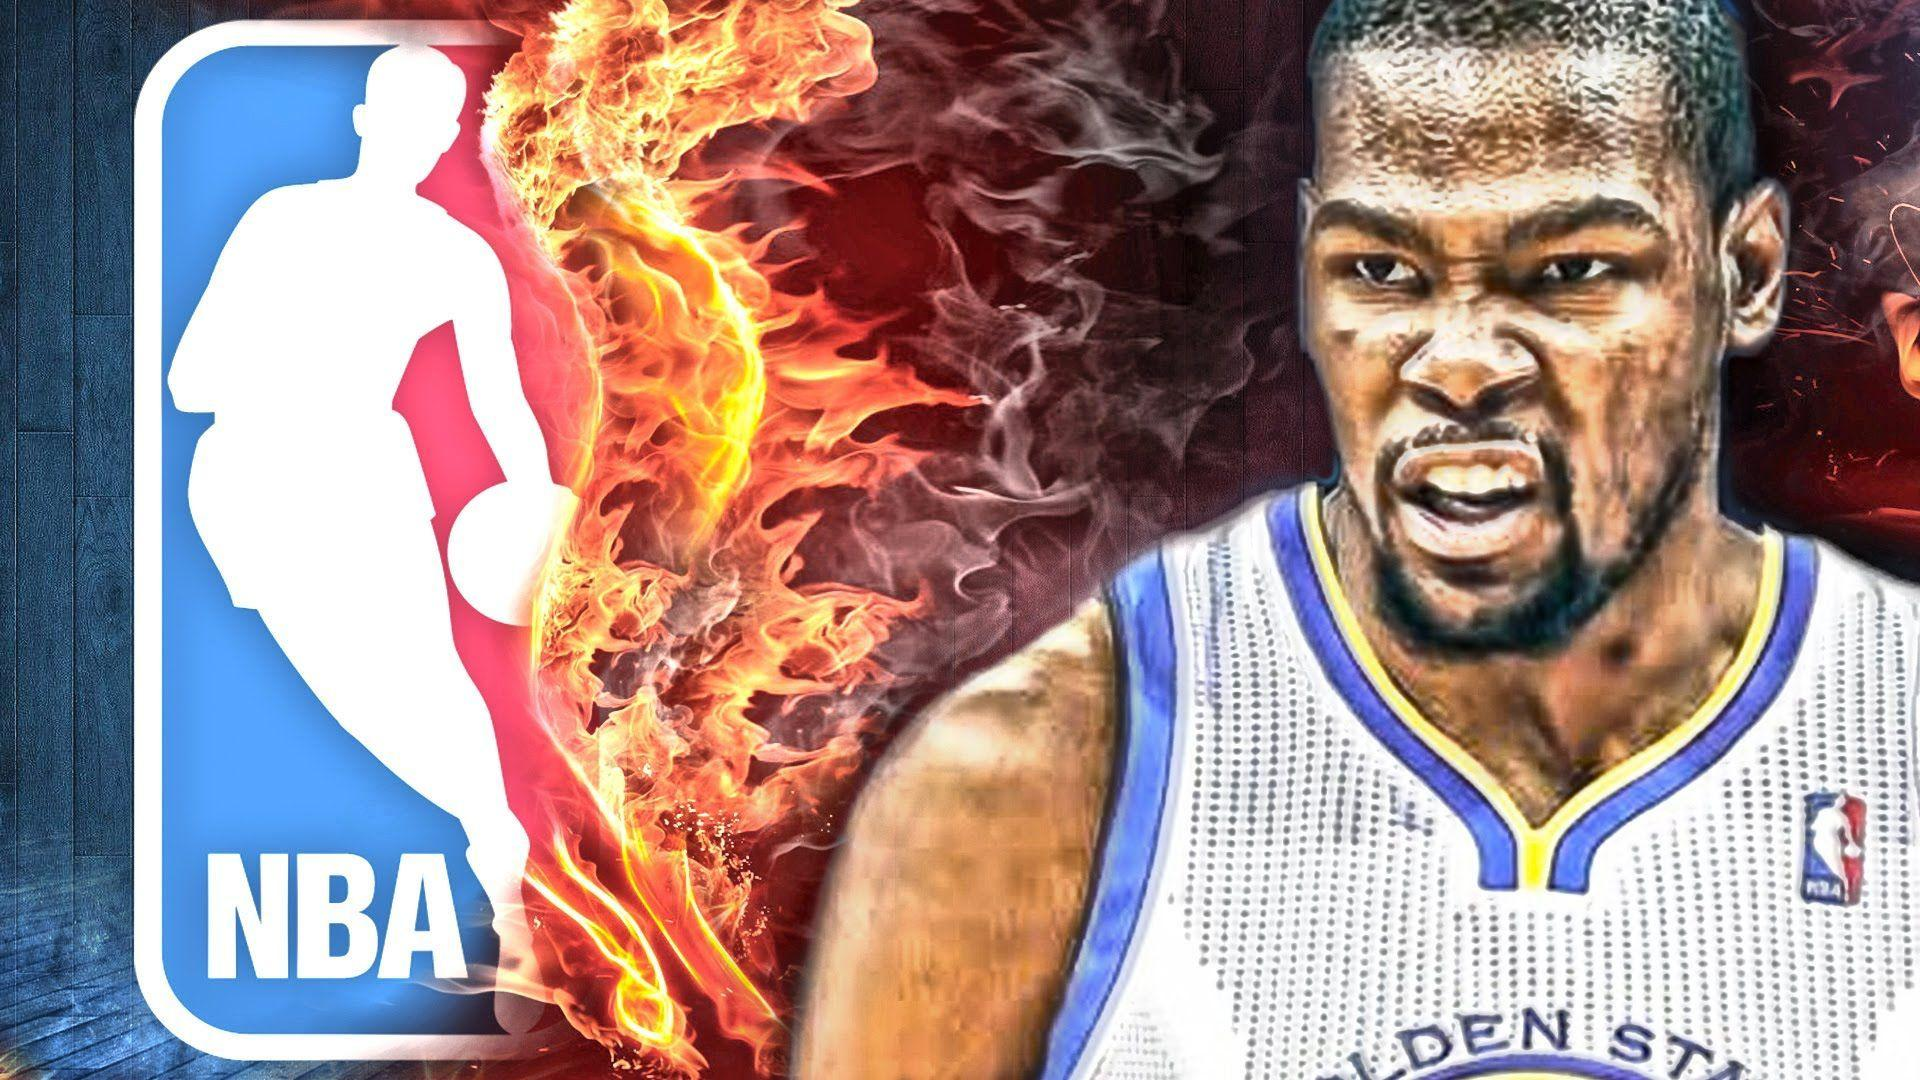 Kevin Durant Wallpapers HD 2017 - Wallpaper Cave